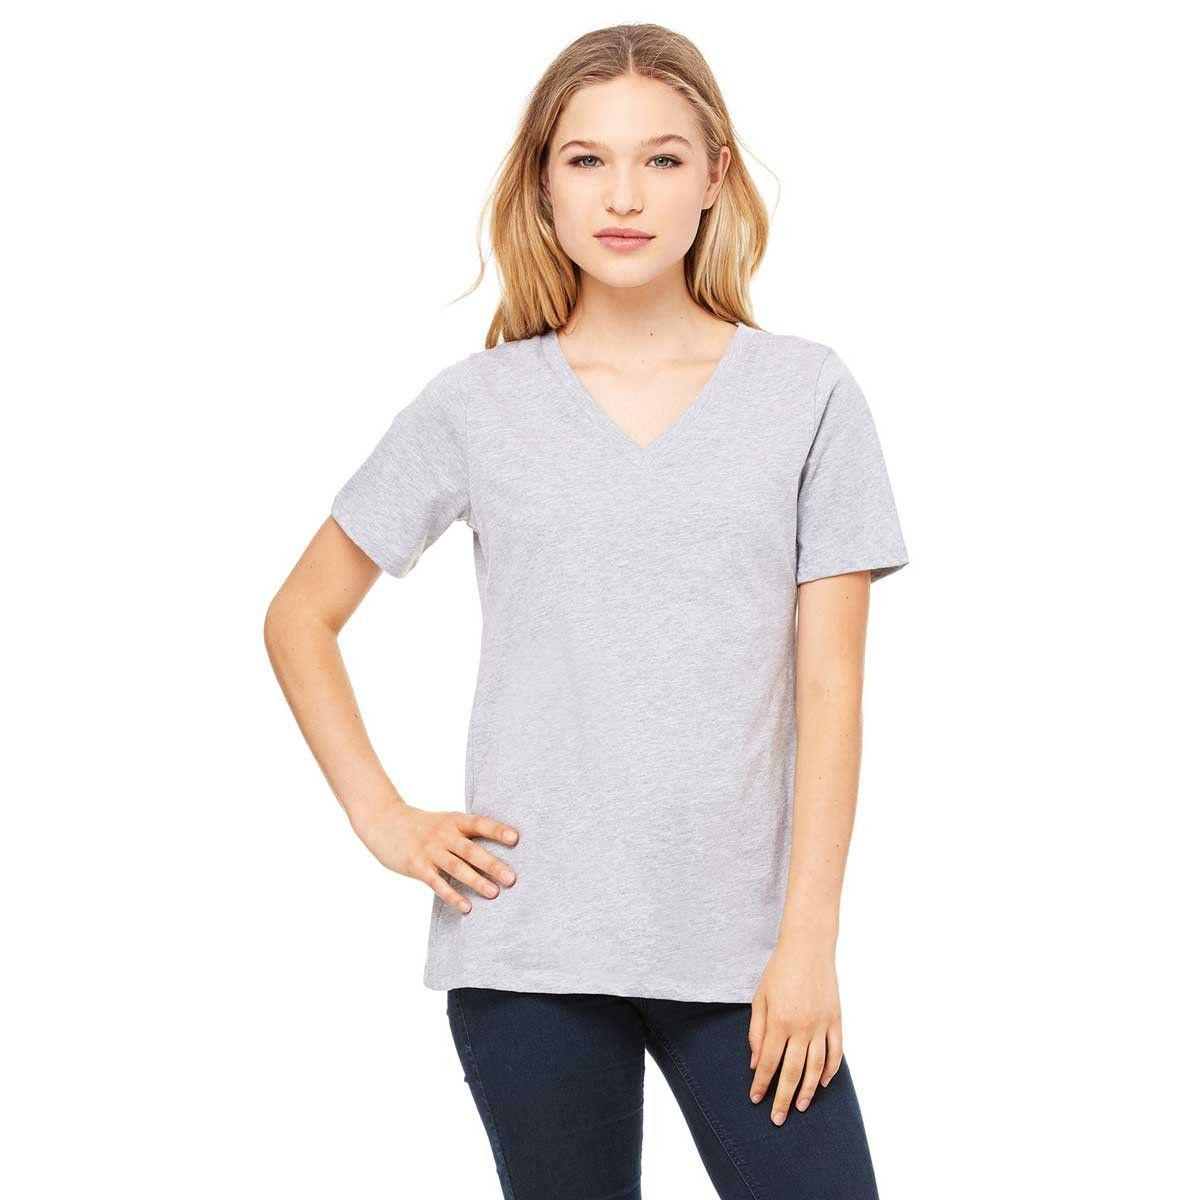 c44747462c9a Bella + Canvas Women's Athletic Heather Relaxed Jersey Short-Sleeve V-Neck T -Shirt